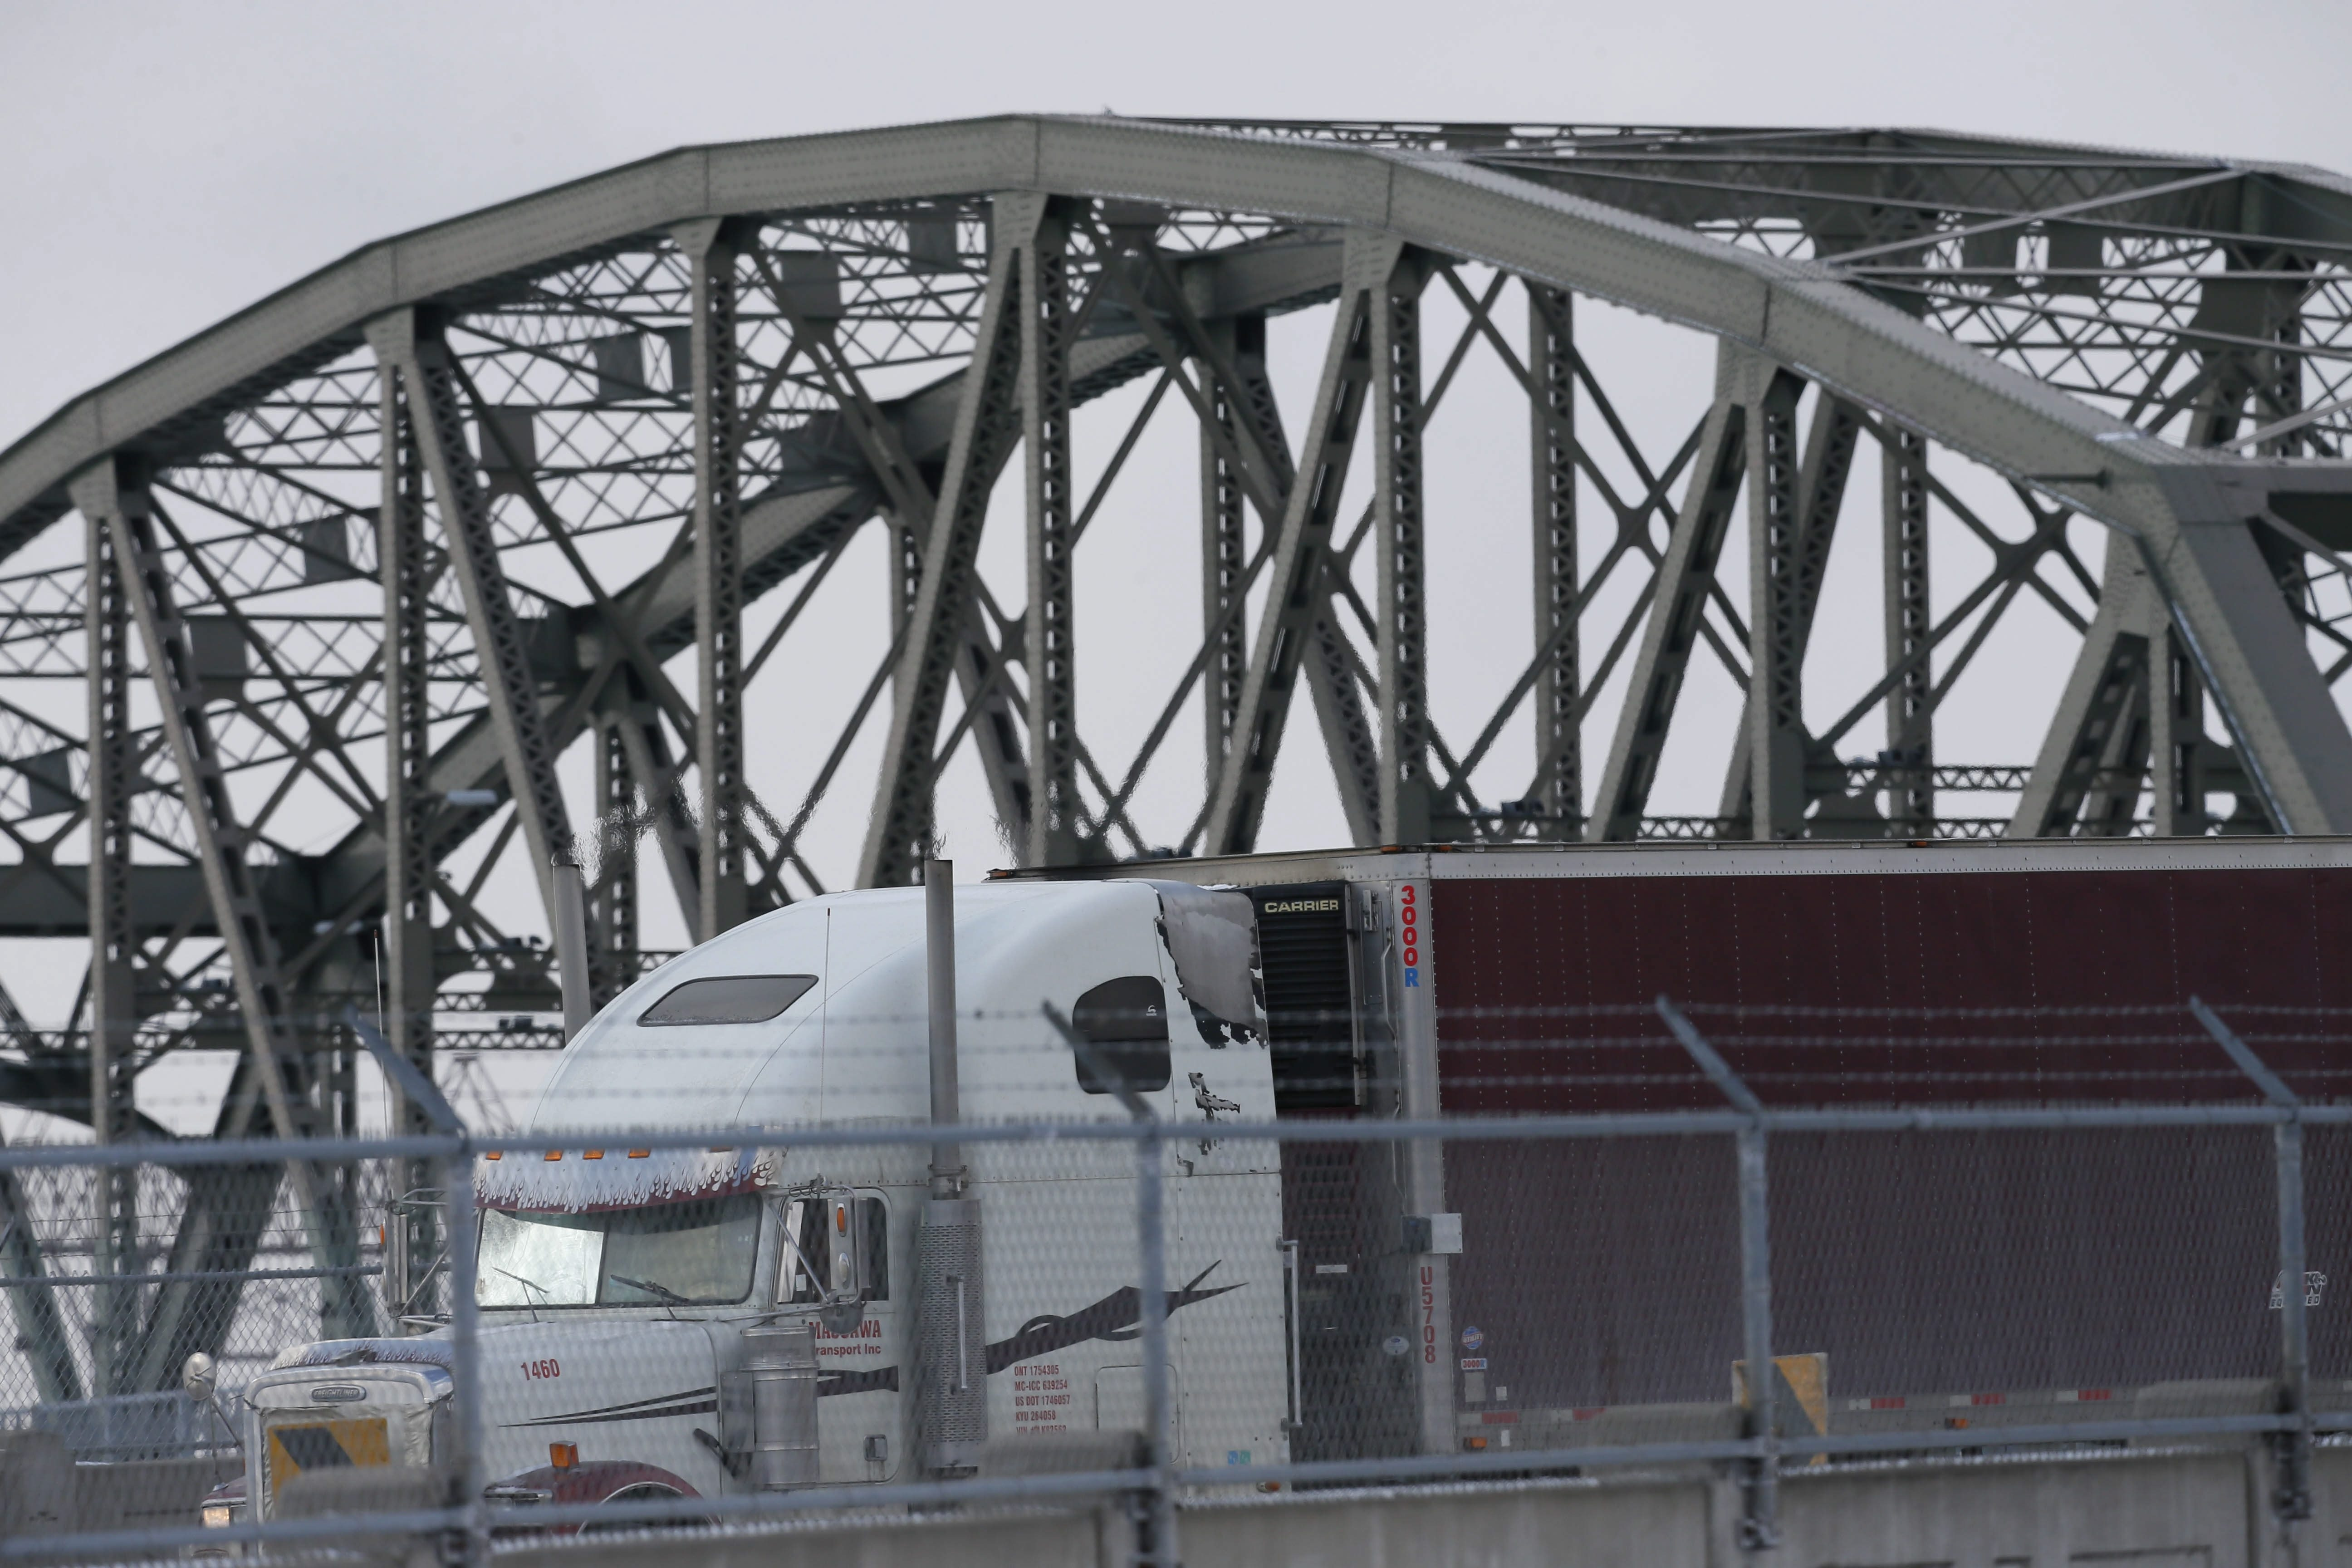 Commercial truck traffic congestion on Peace Bridge and plan for expanded plaza and new ramps have been focus of long battle over environmental impact on West Side neighborhood.